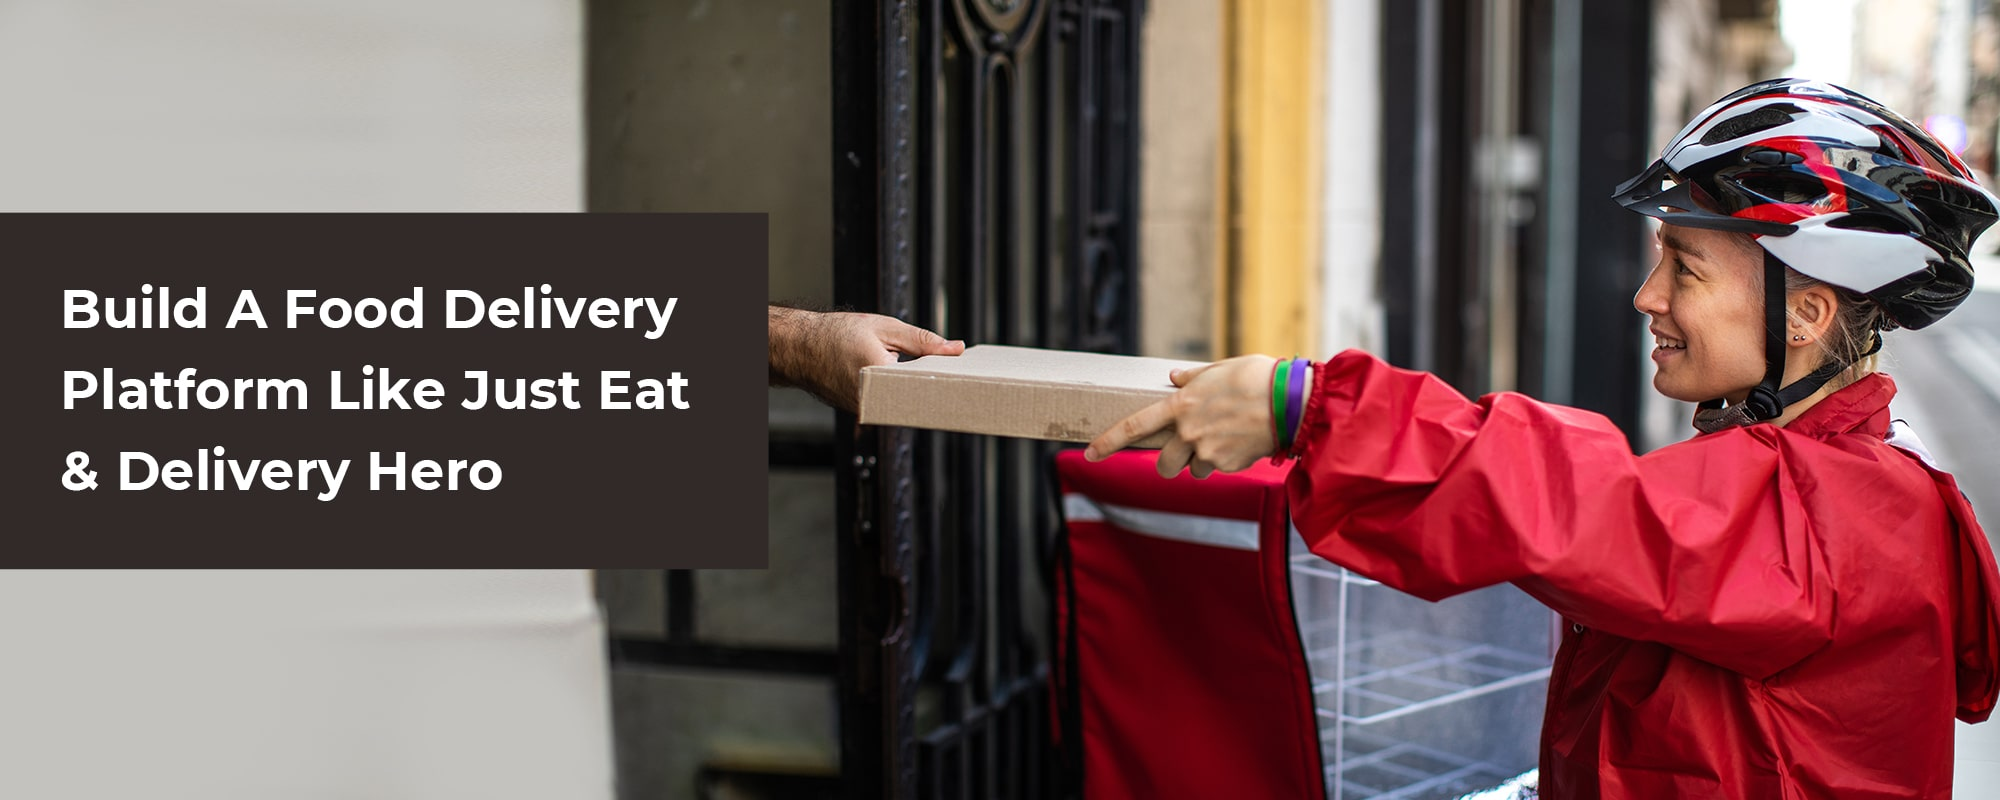 How To Start a Food Delivery Business like Just Eat or Delivery Hero